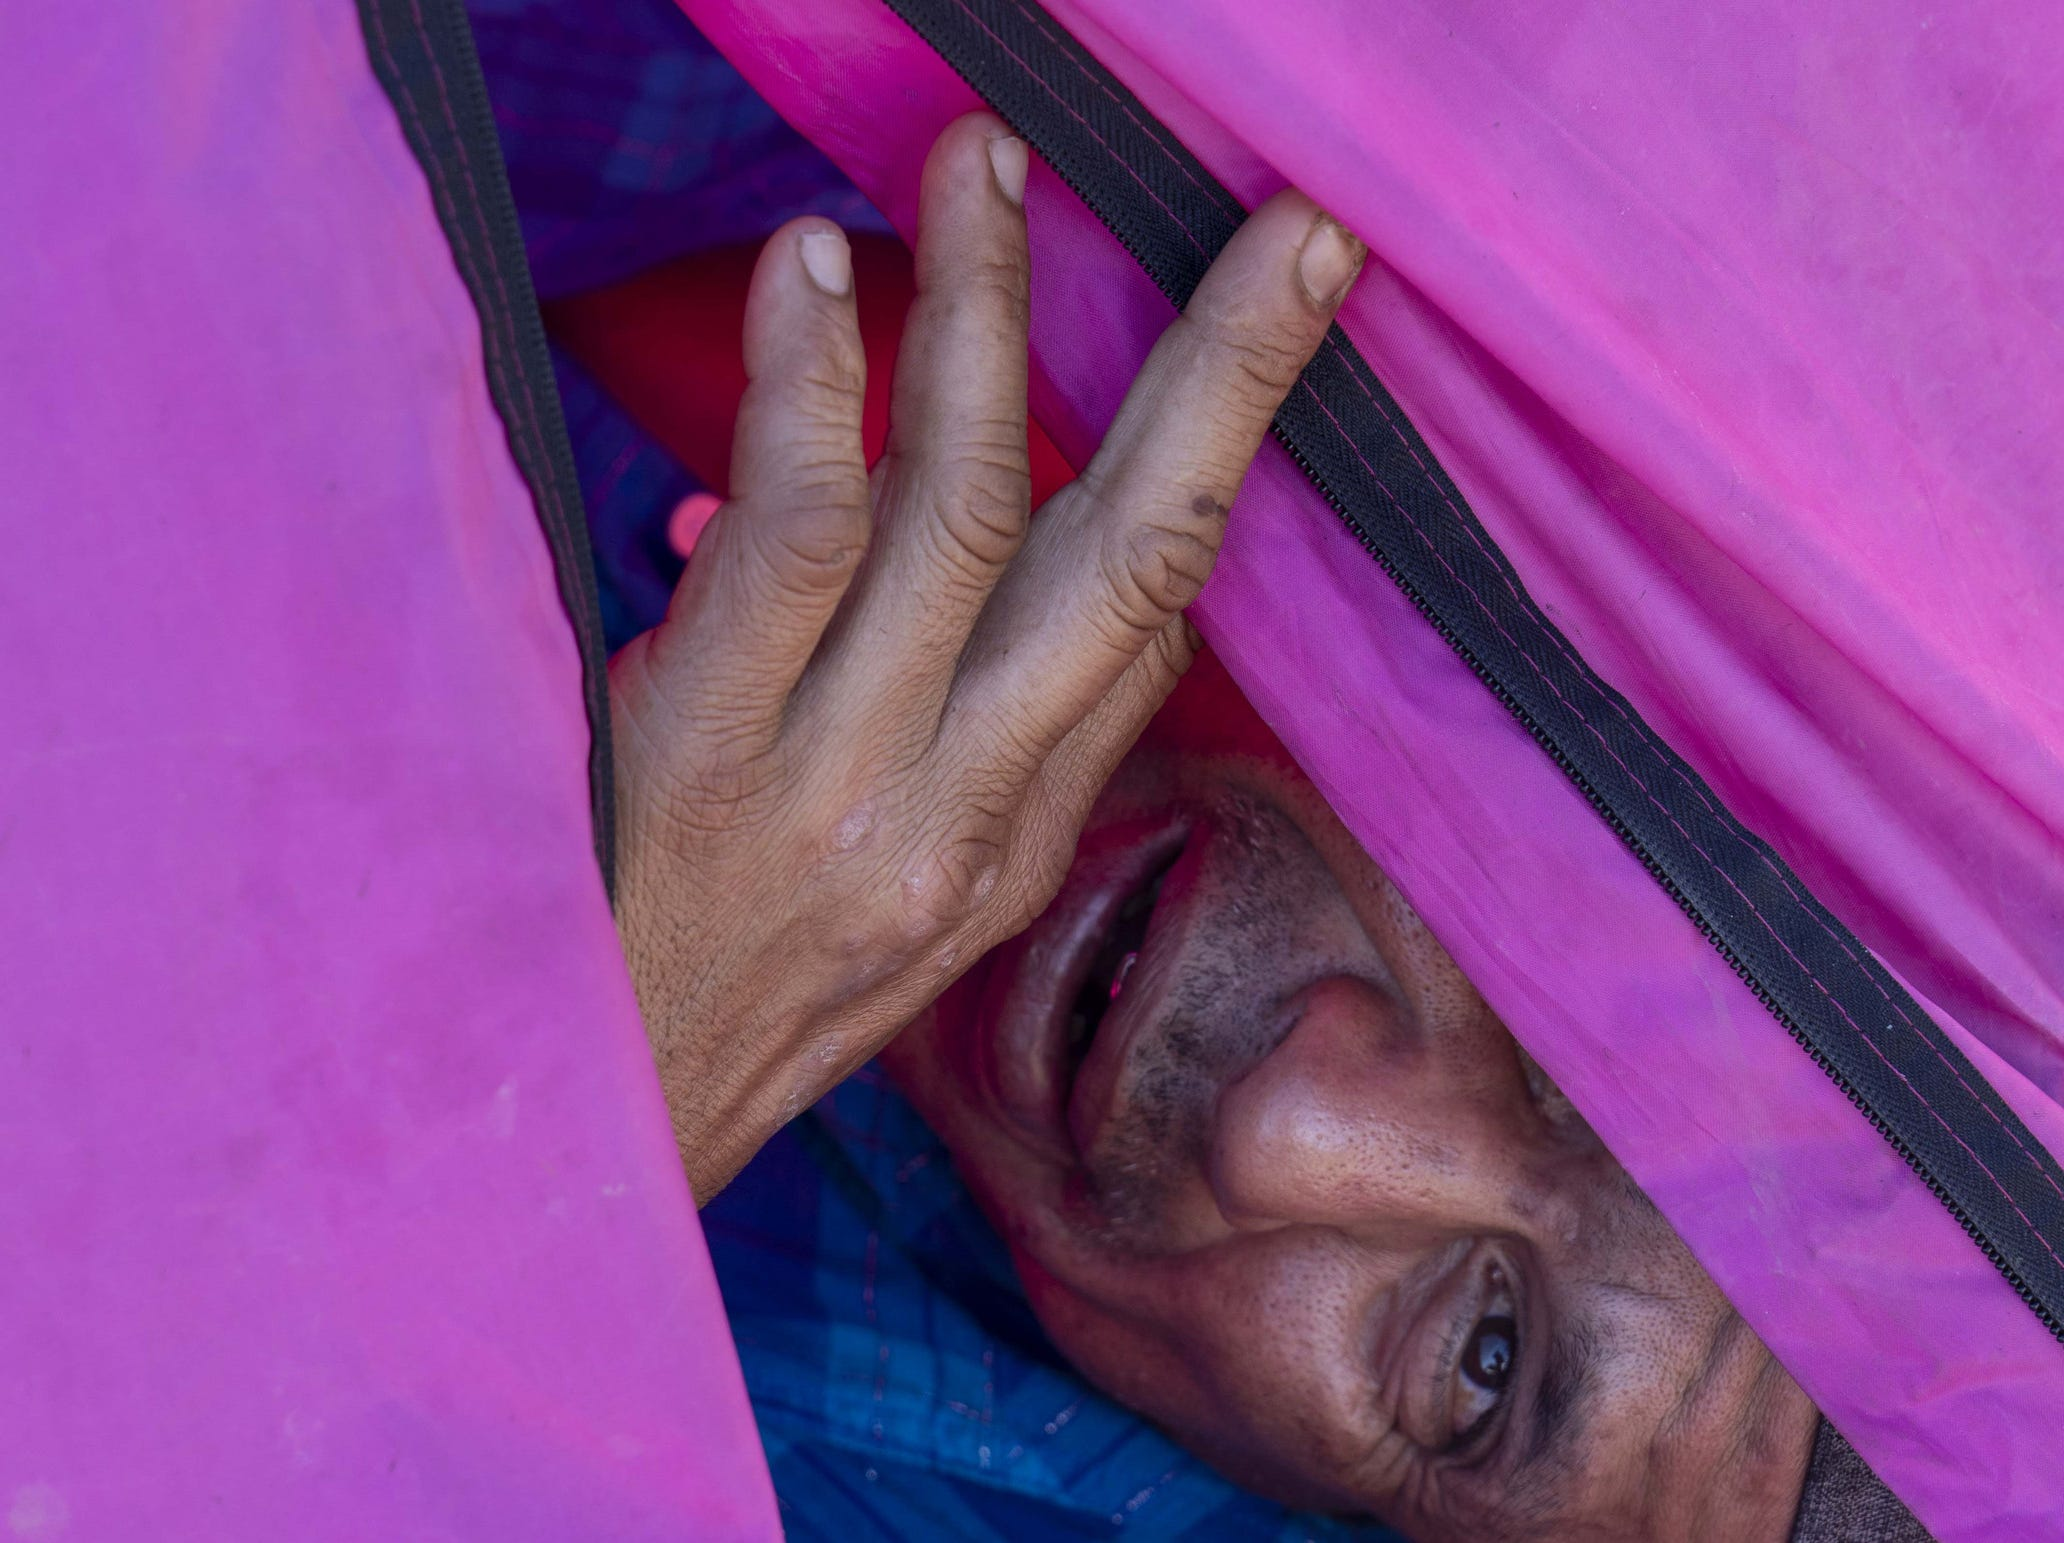 Migrant Gabriel Rosales, a recent deportee, stays at a make-shift shelter in Tijuana, Mexico, February 2019.